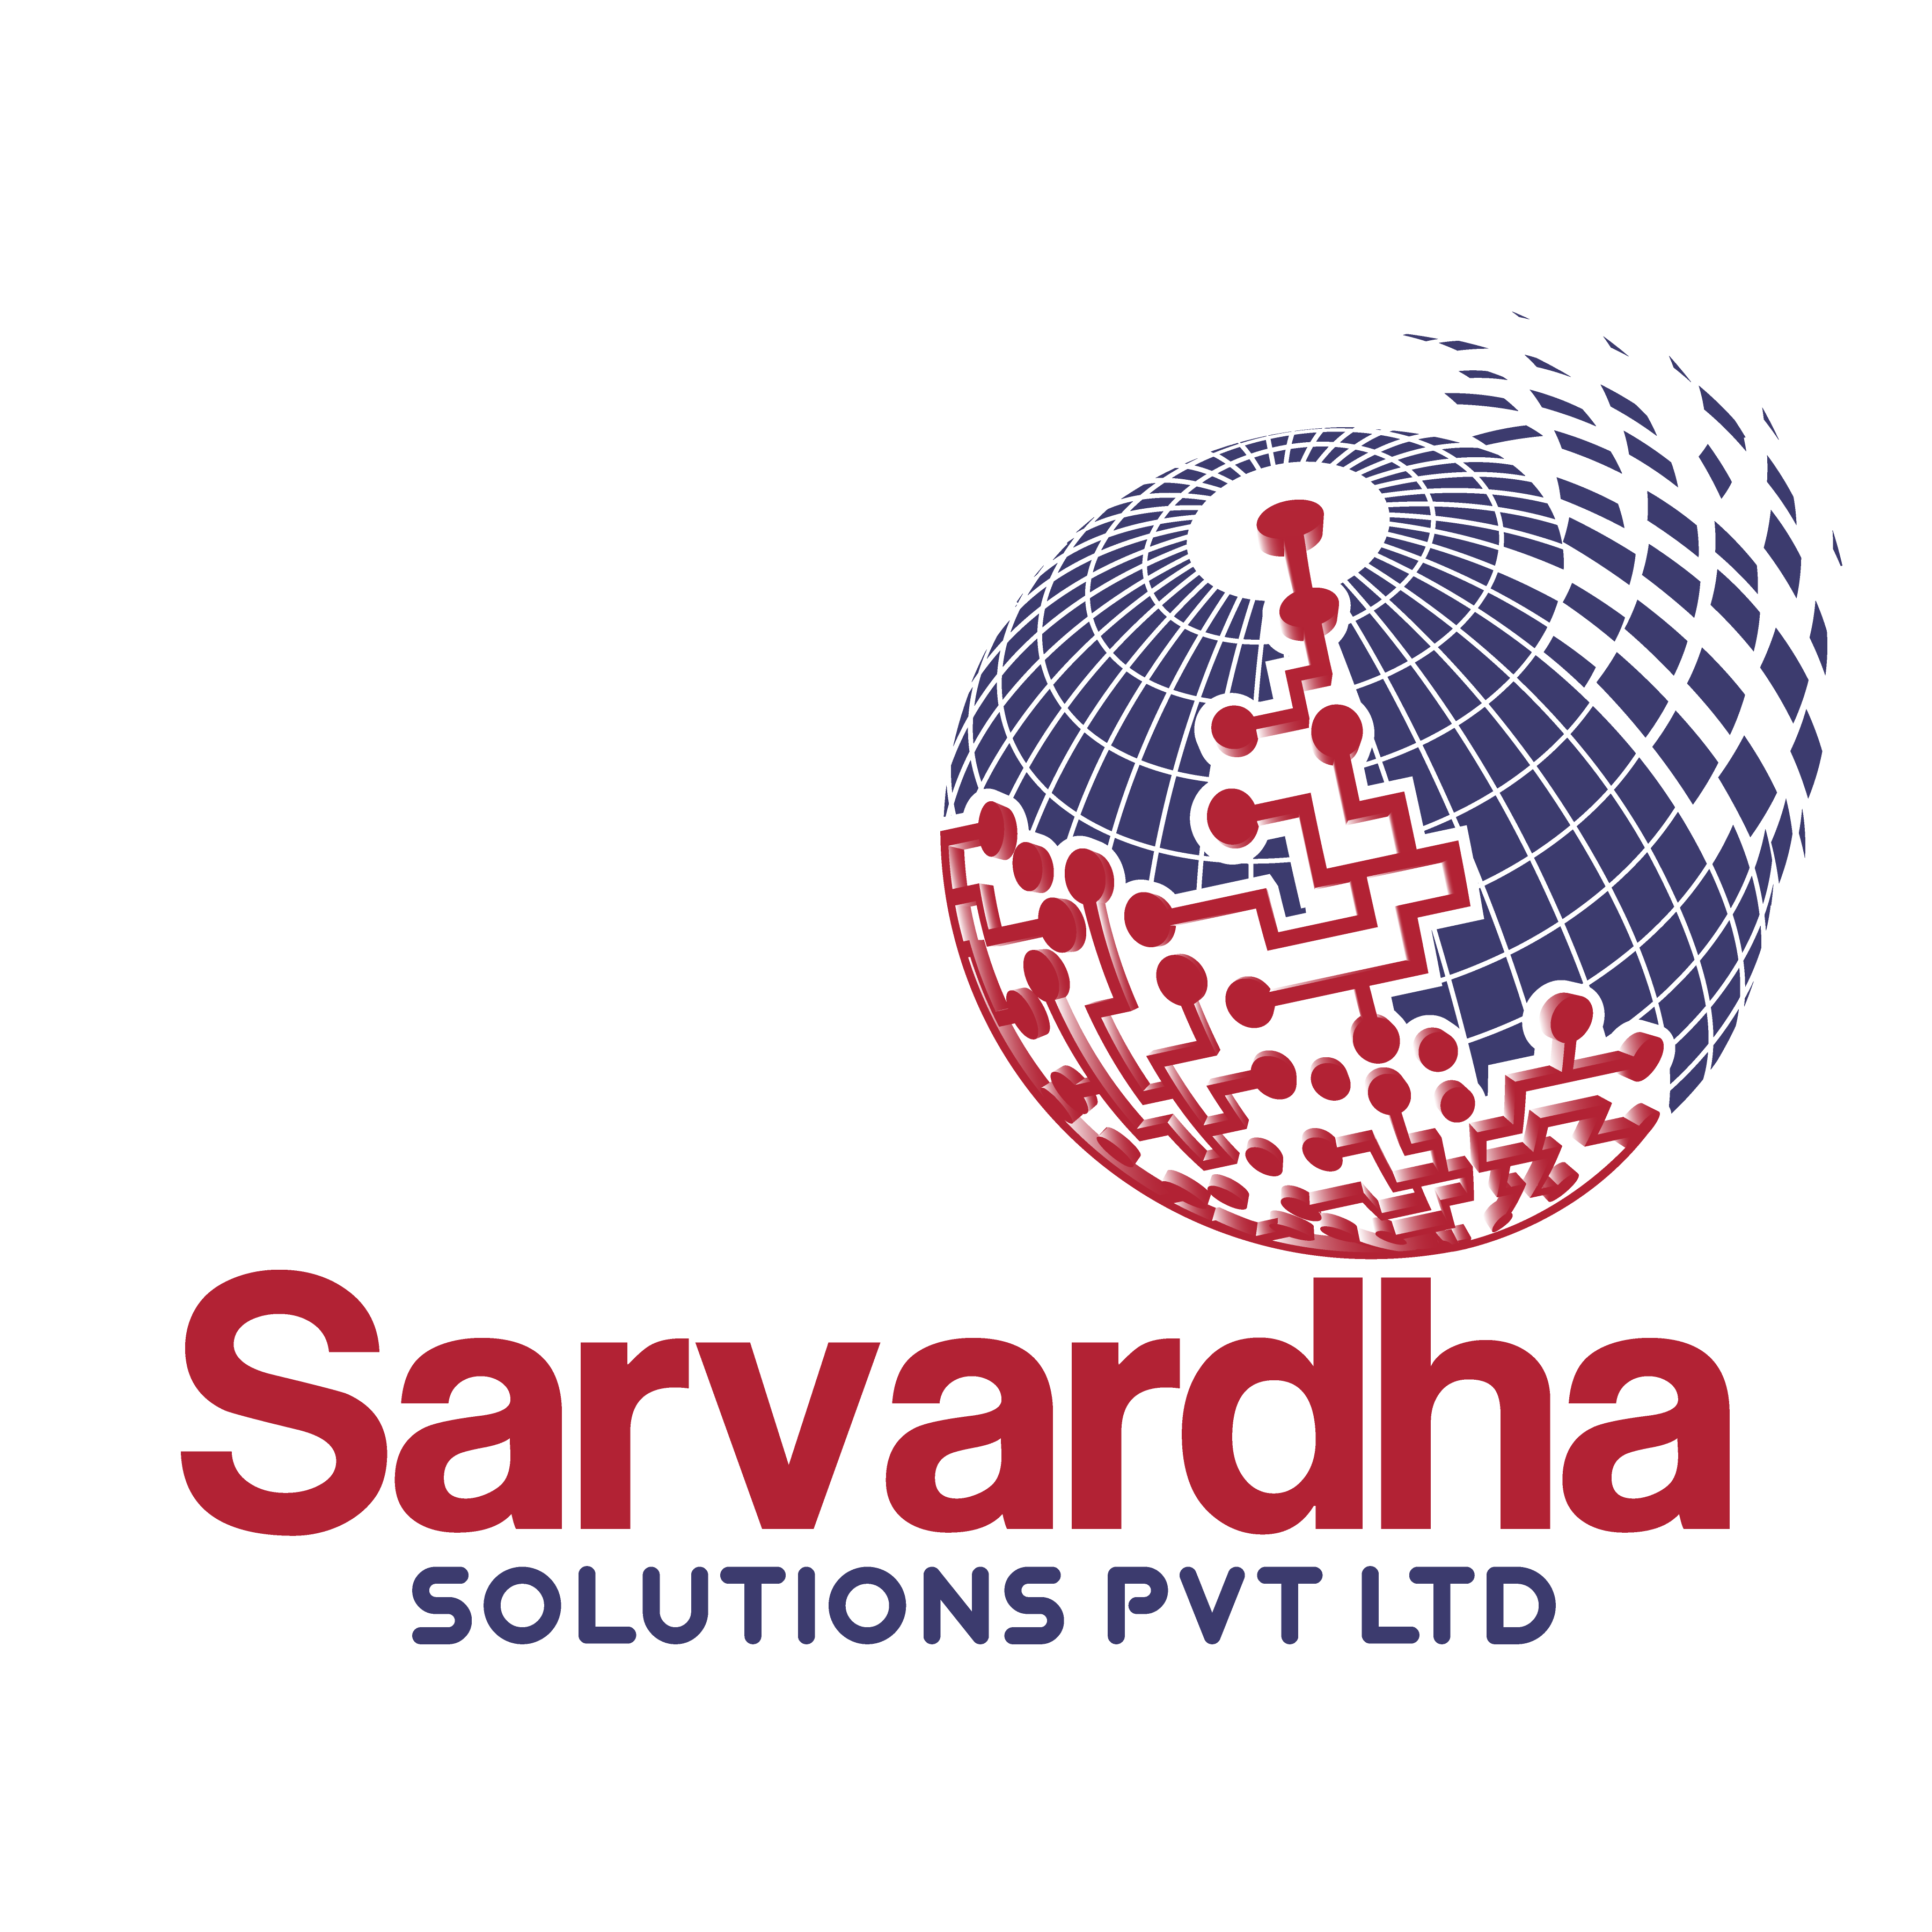 Sarvardha Solutions Pvt Ltd - Digital Marketing company logo